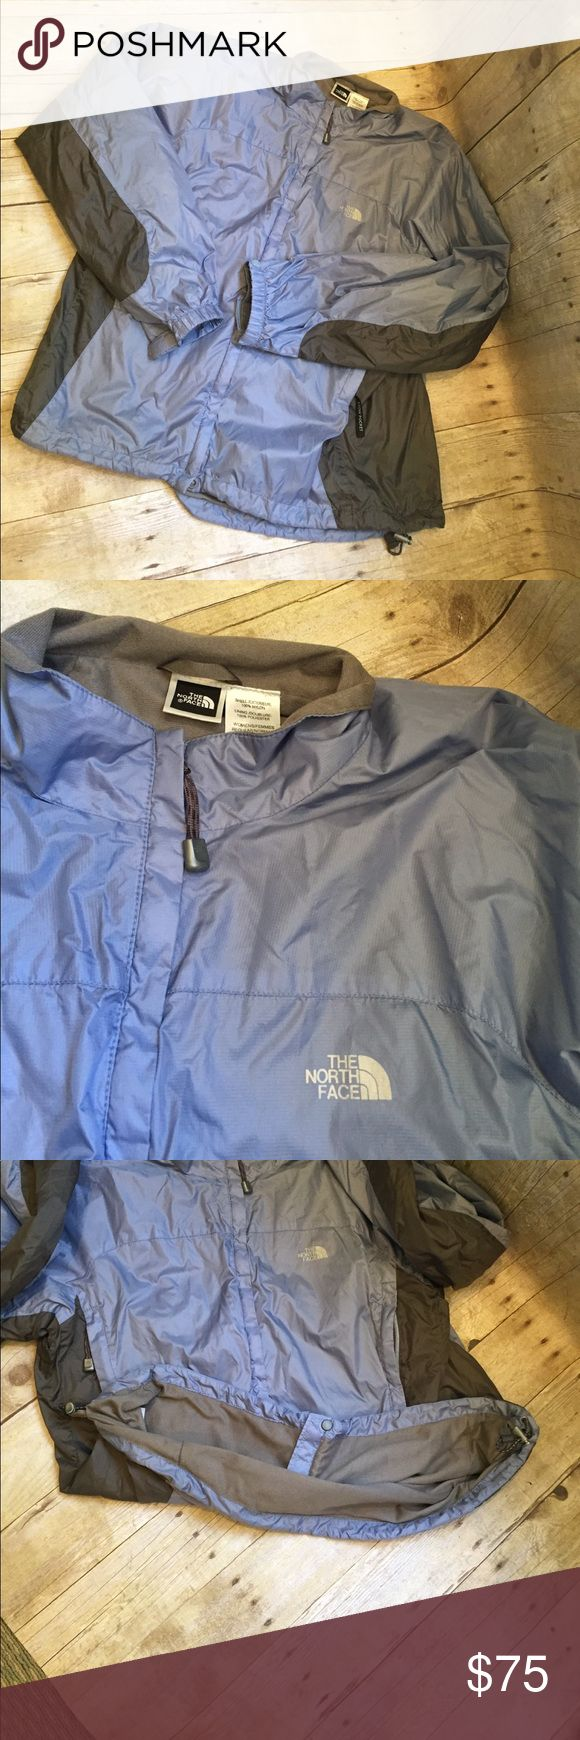 NORTH FACE XL purple/grey XL Women's jacket North Face XL women's jacket nylon outside. Lining poly. Bought but too big. North Face Jackets & Coats Utility Jackets